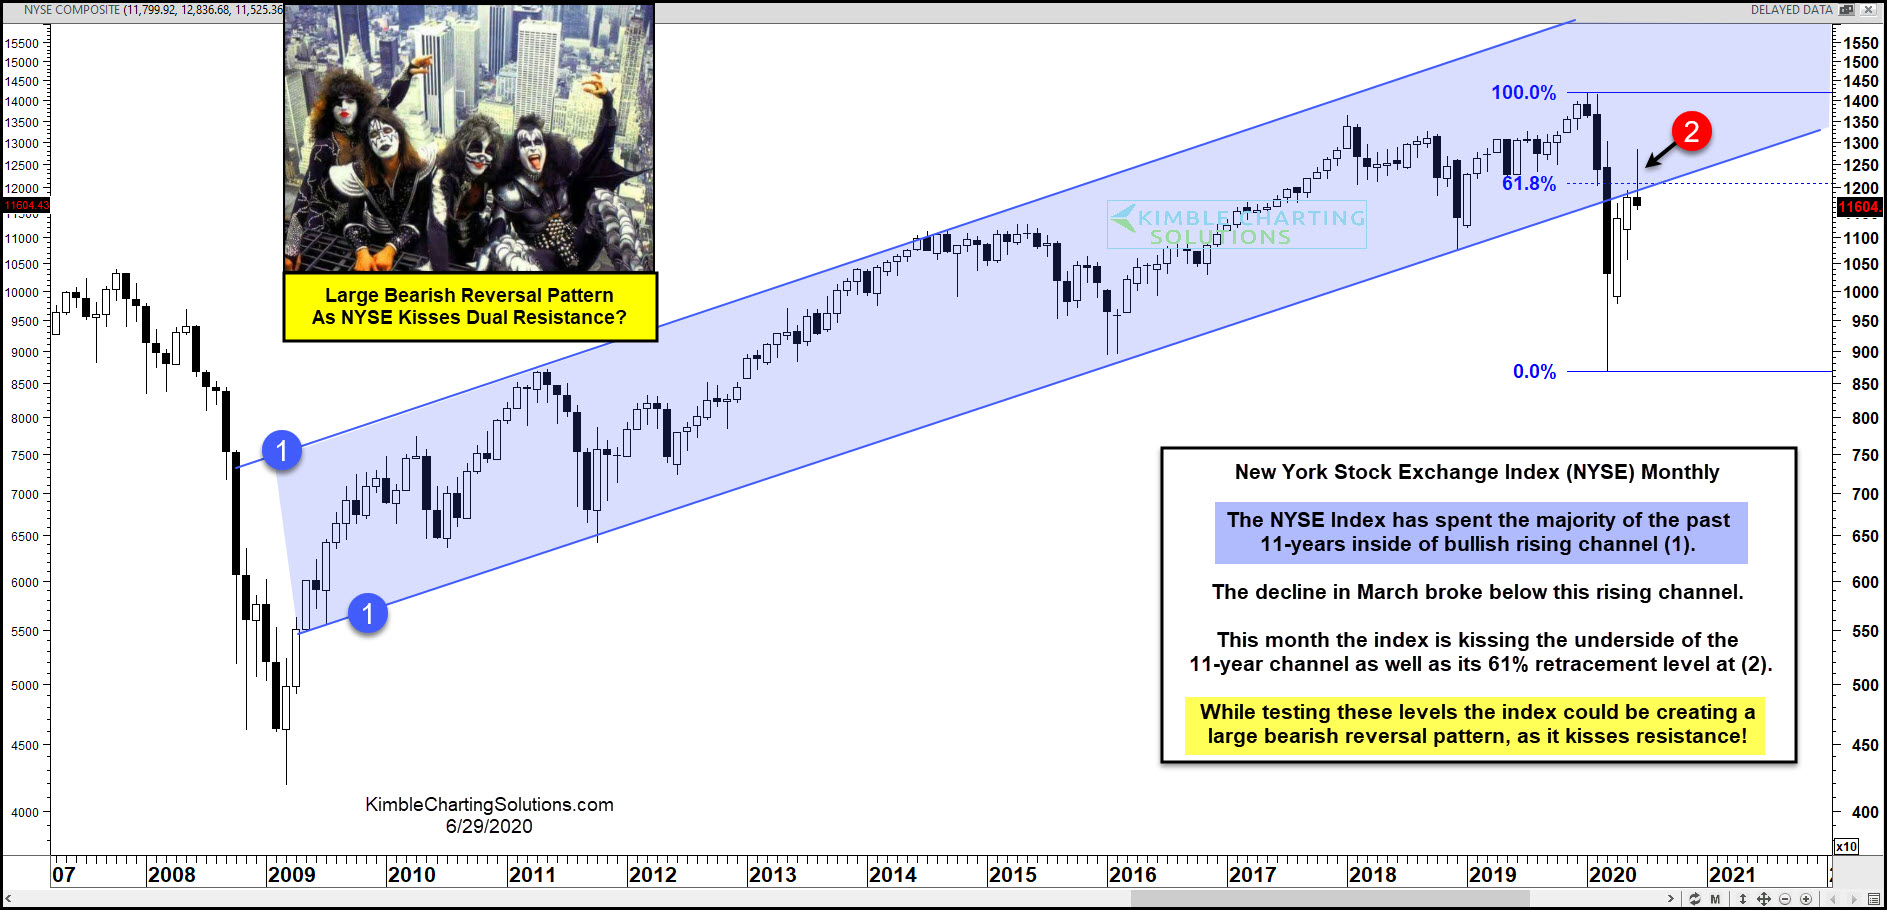 NYSE Index Monthly Chart